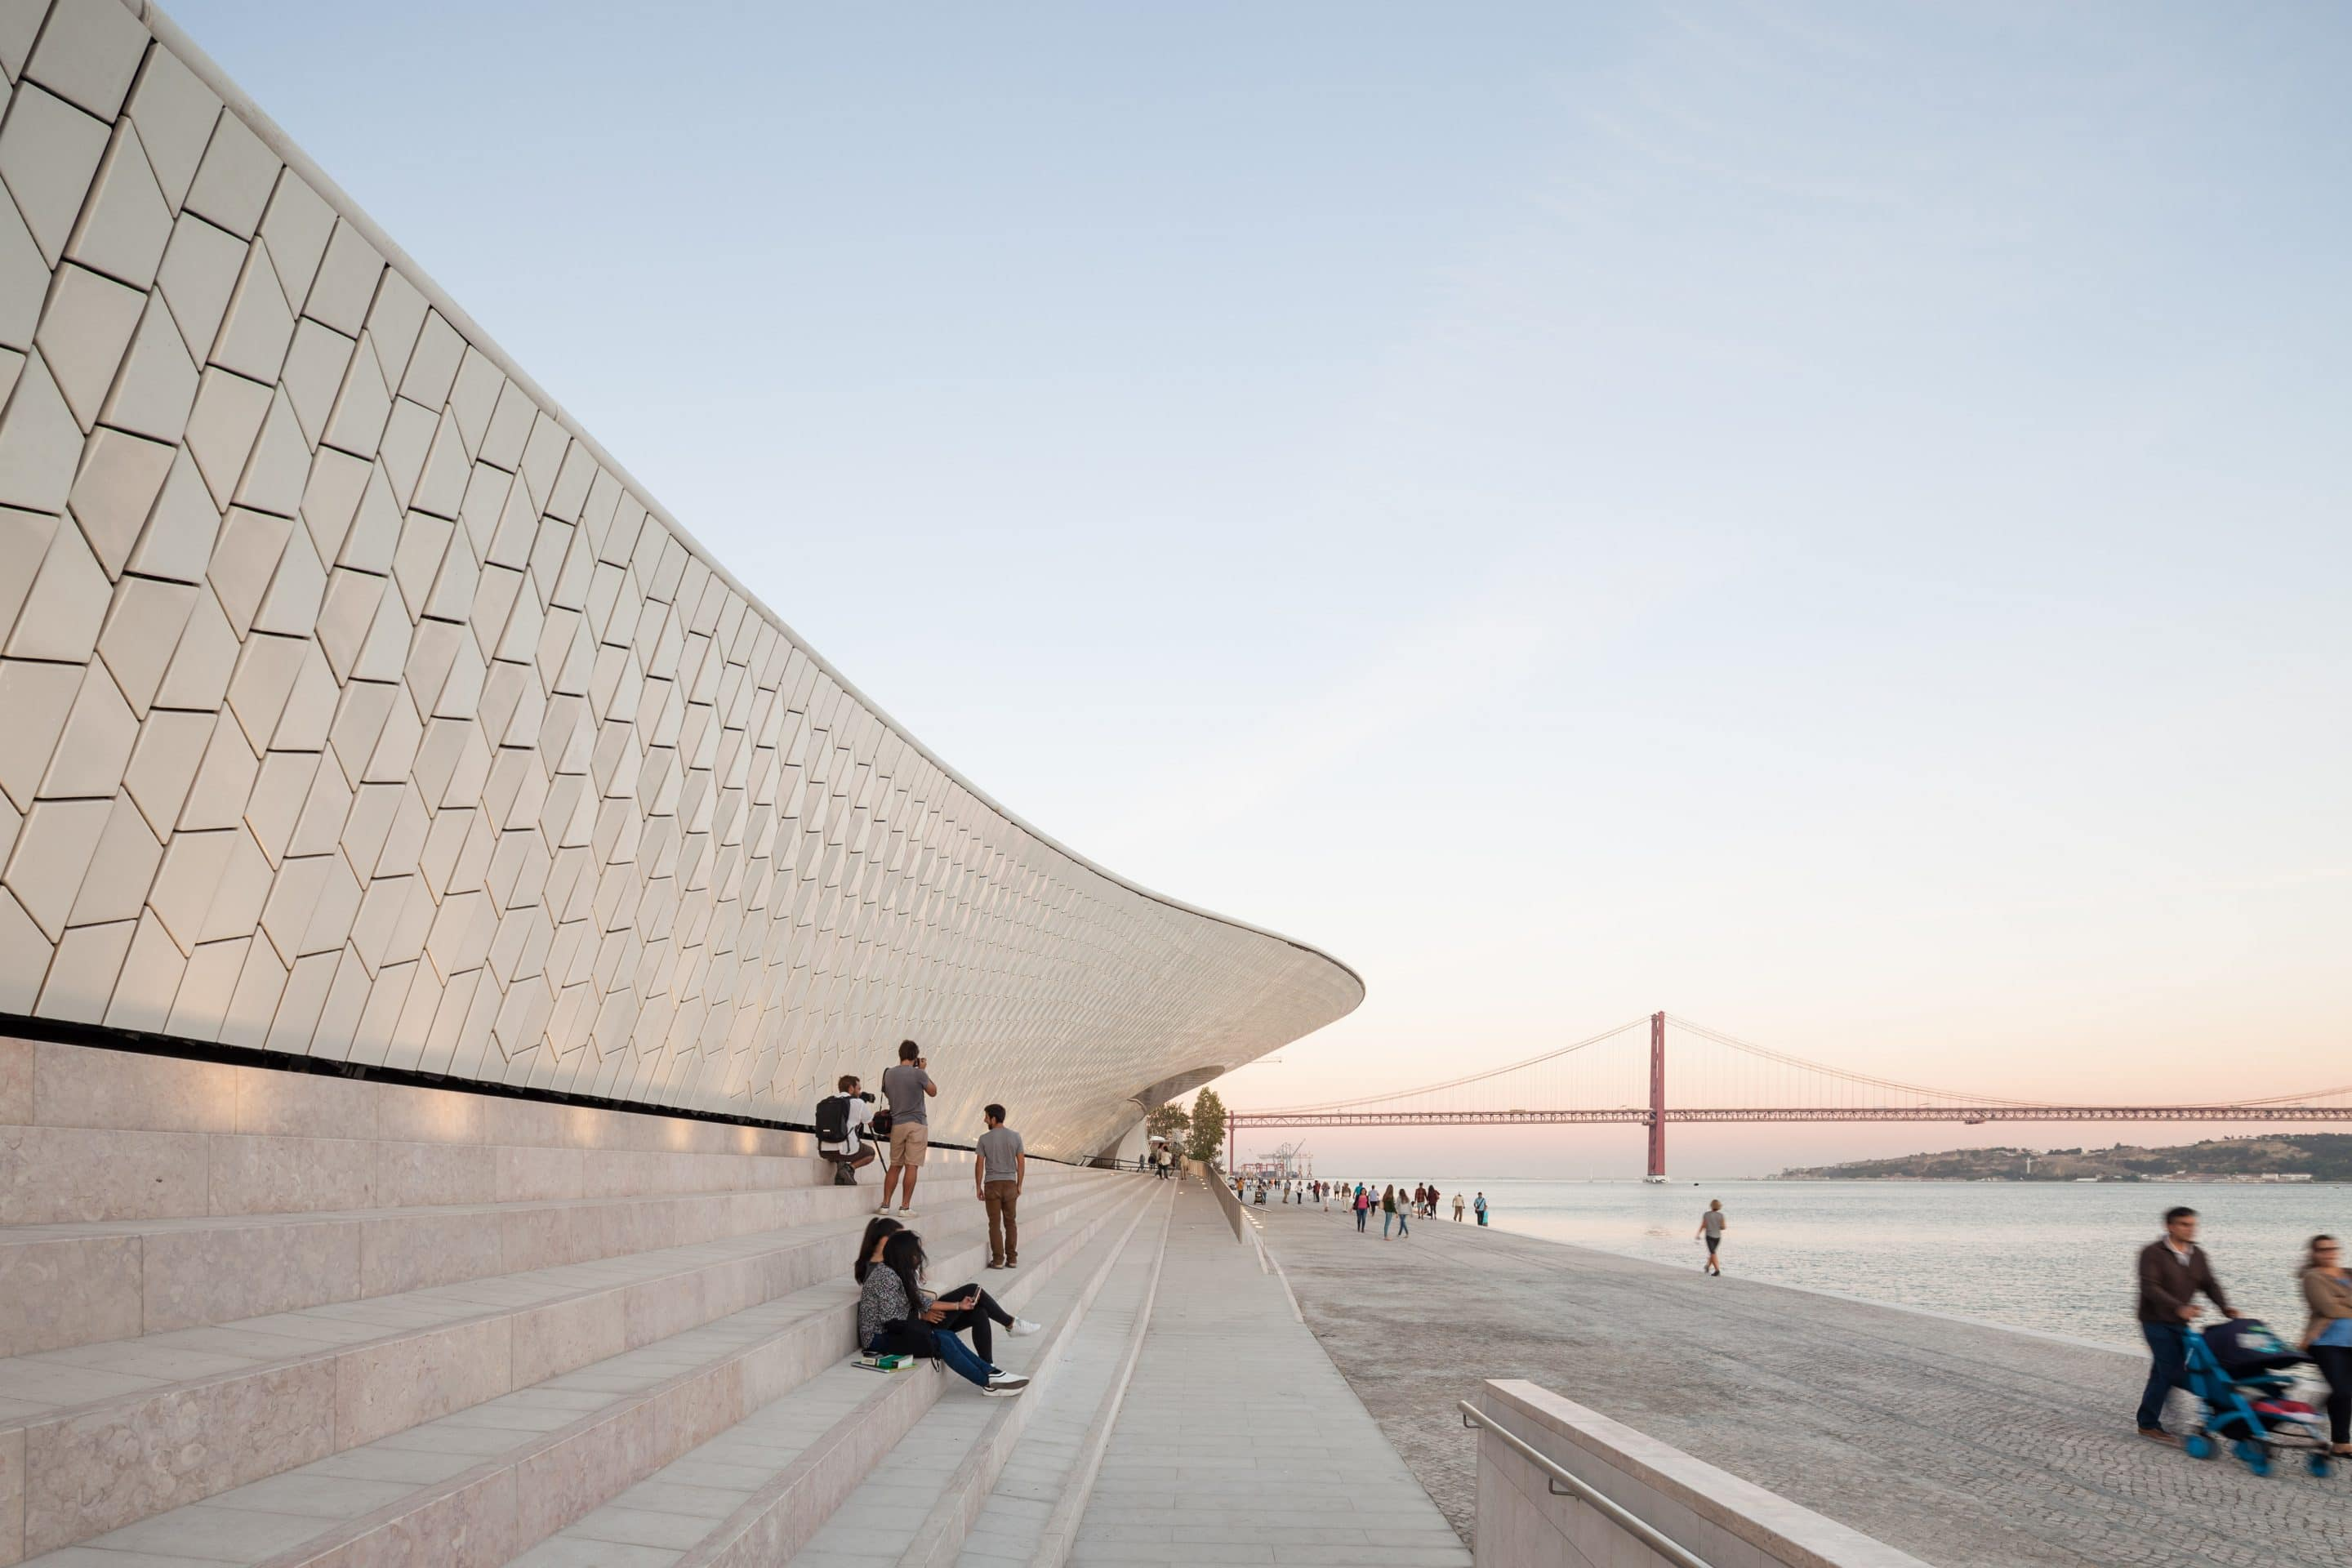 Portugal's Best Architecture Projects architecture Portugal's Best Architecture Projects MAAT Museum 2